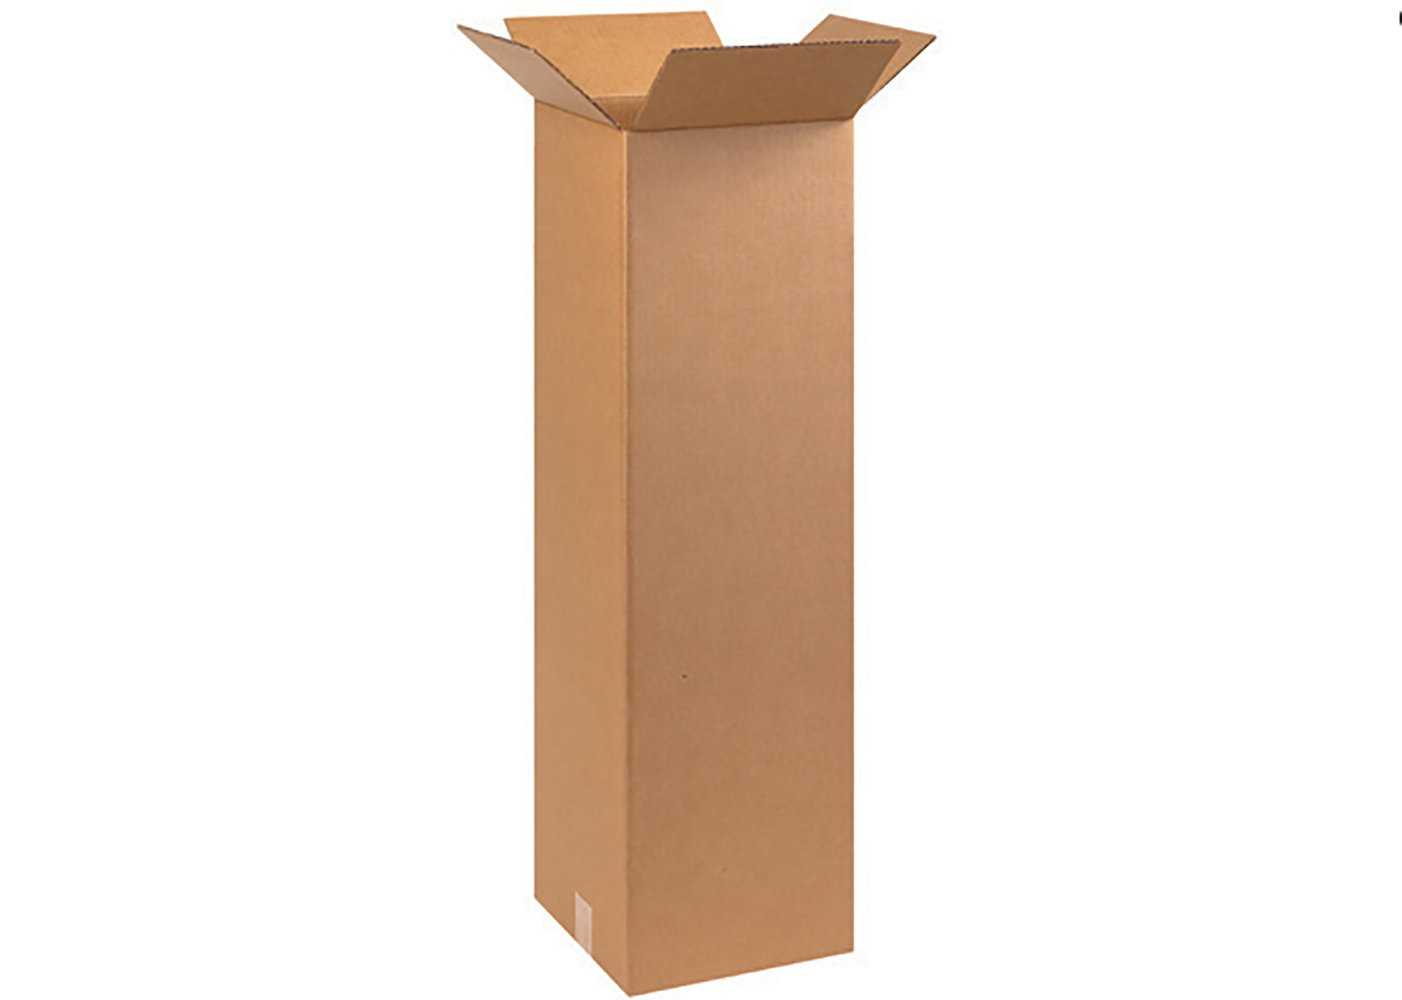 for Moving Boxes Fast BF101038 Tall Cardboard Boxes Pack of 25 10 x 10 x 38 Shipping Packing or Storage Kraft Single Wall Corrugated